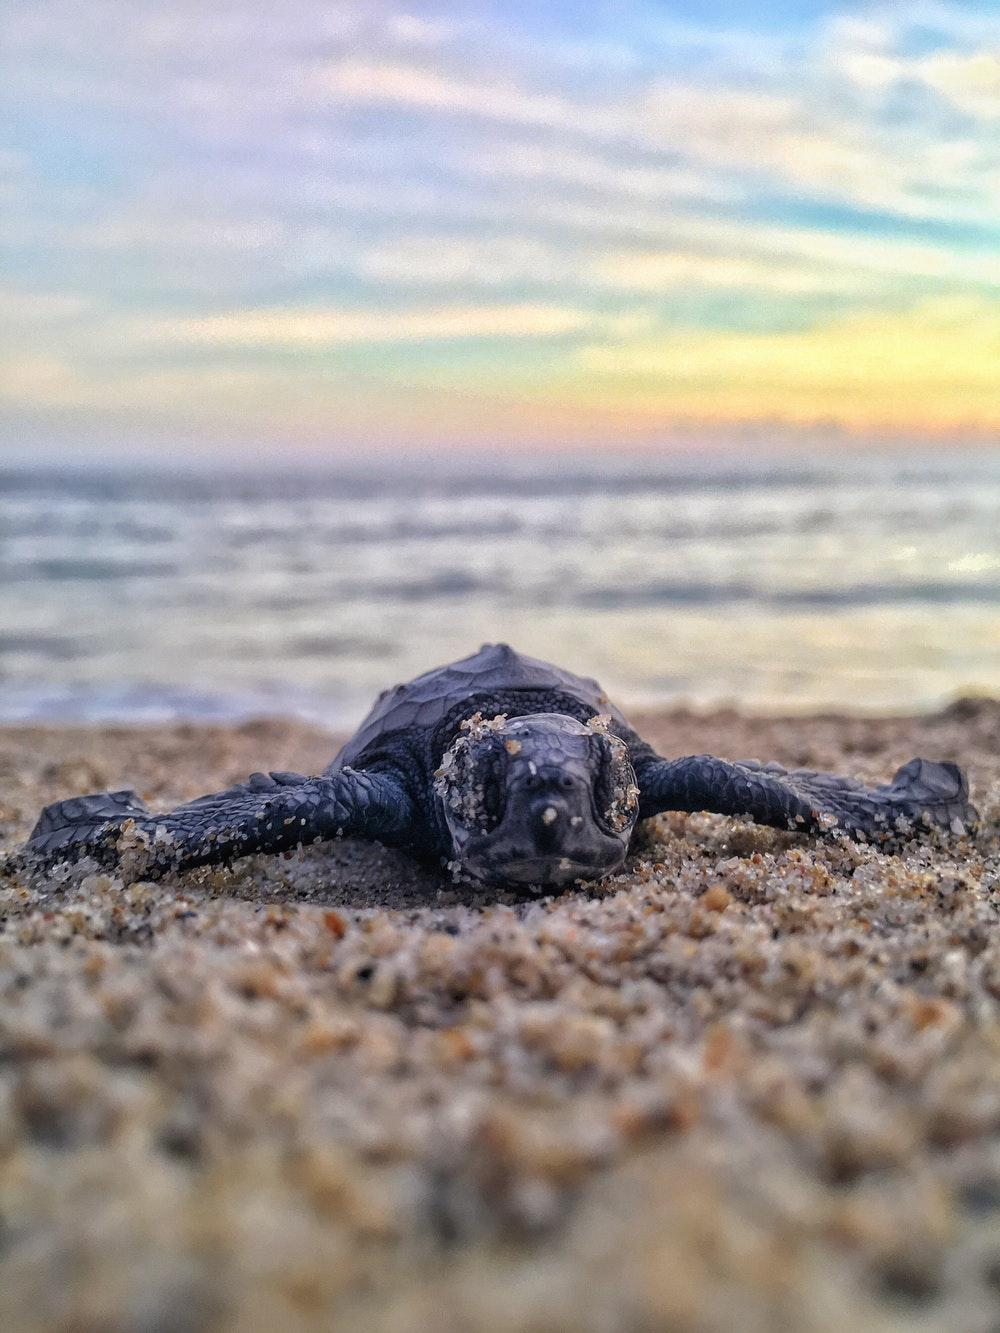 100+ Sea Turtle Pictures | Download Free Images on Unsplash